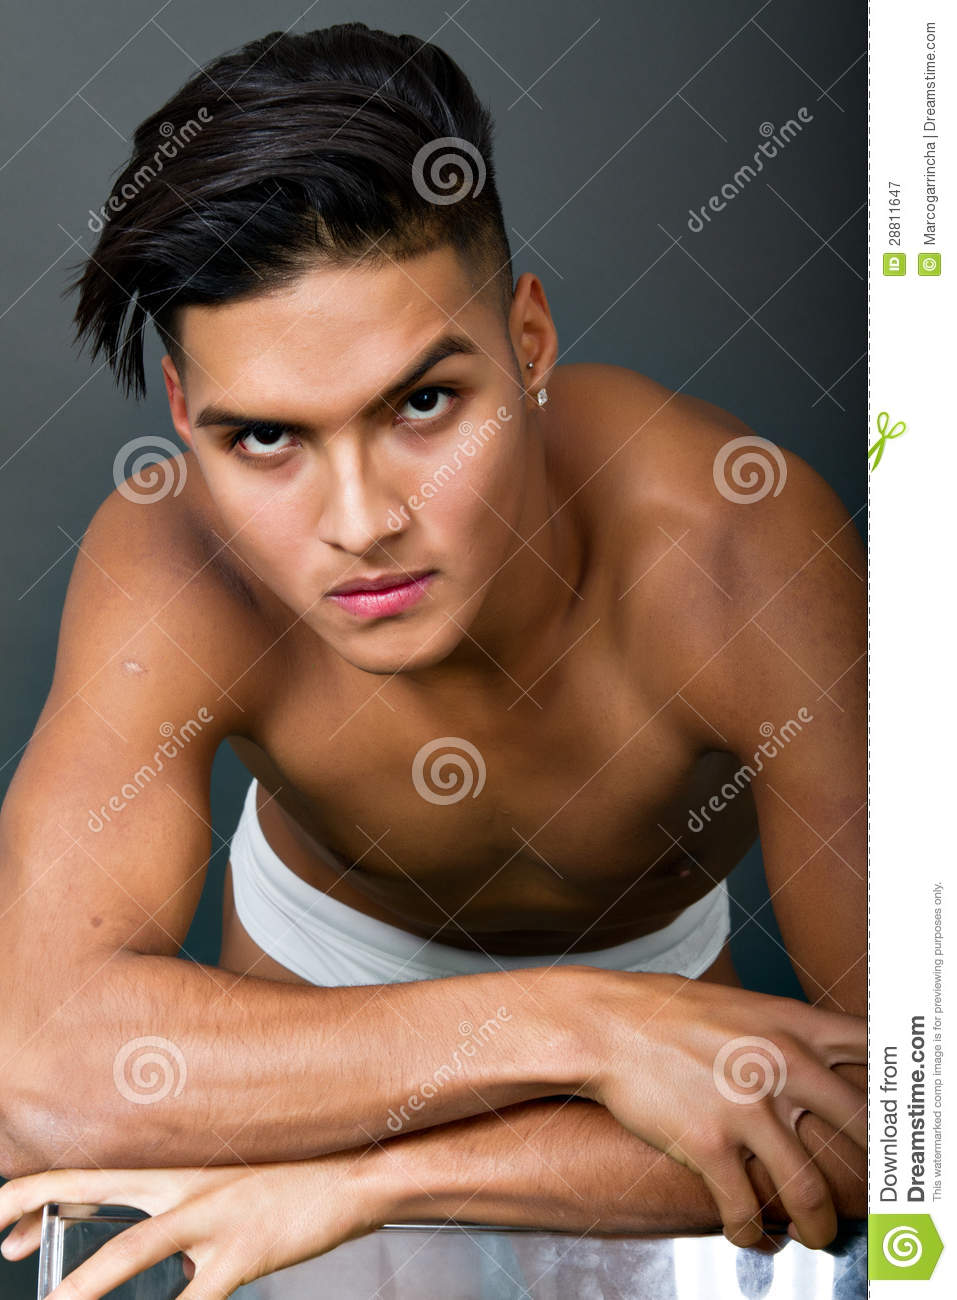 Macho Latino Royalty Free Stock Photography Image 28811647